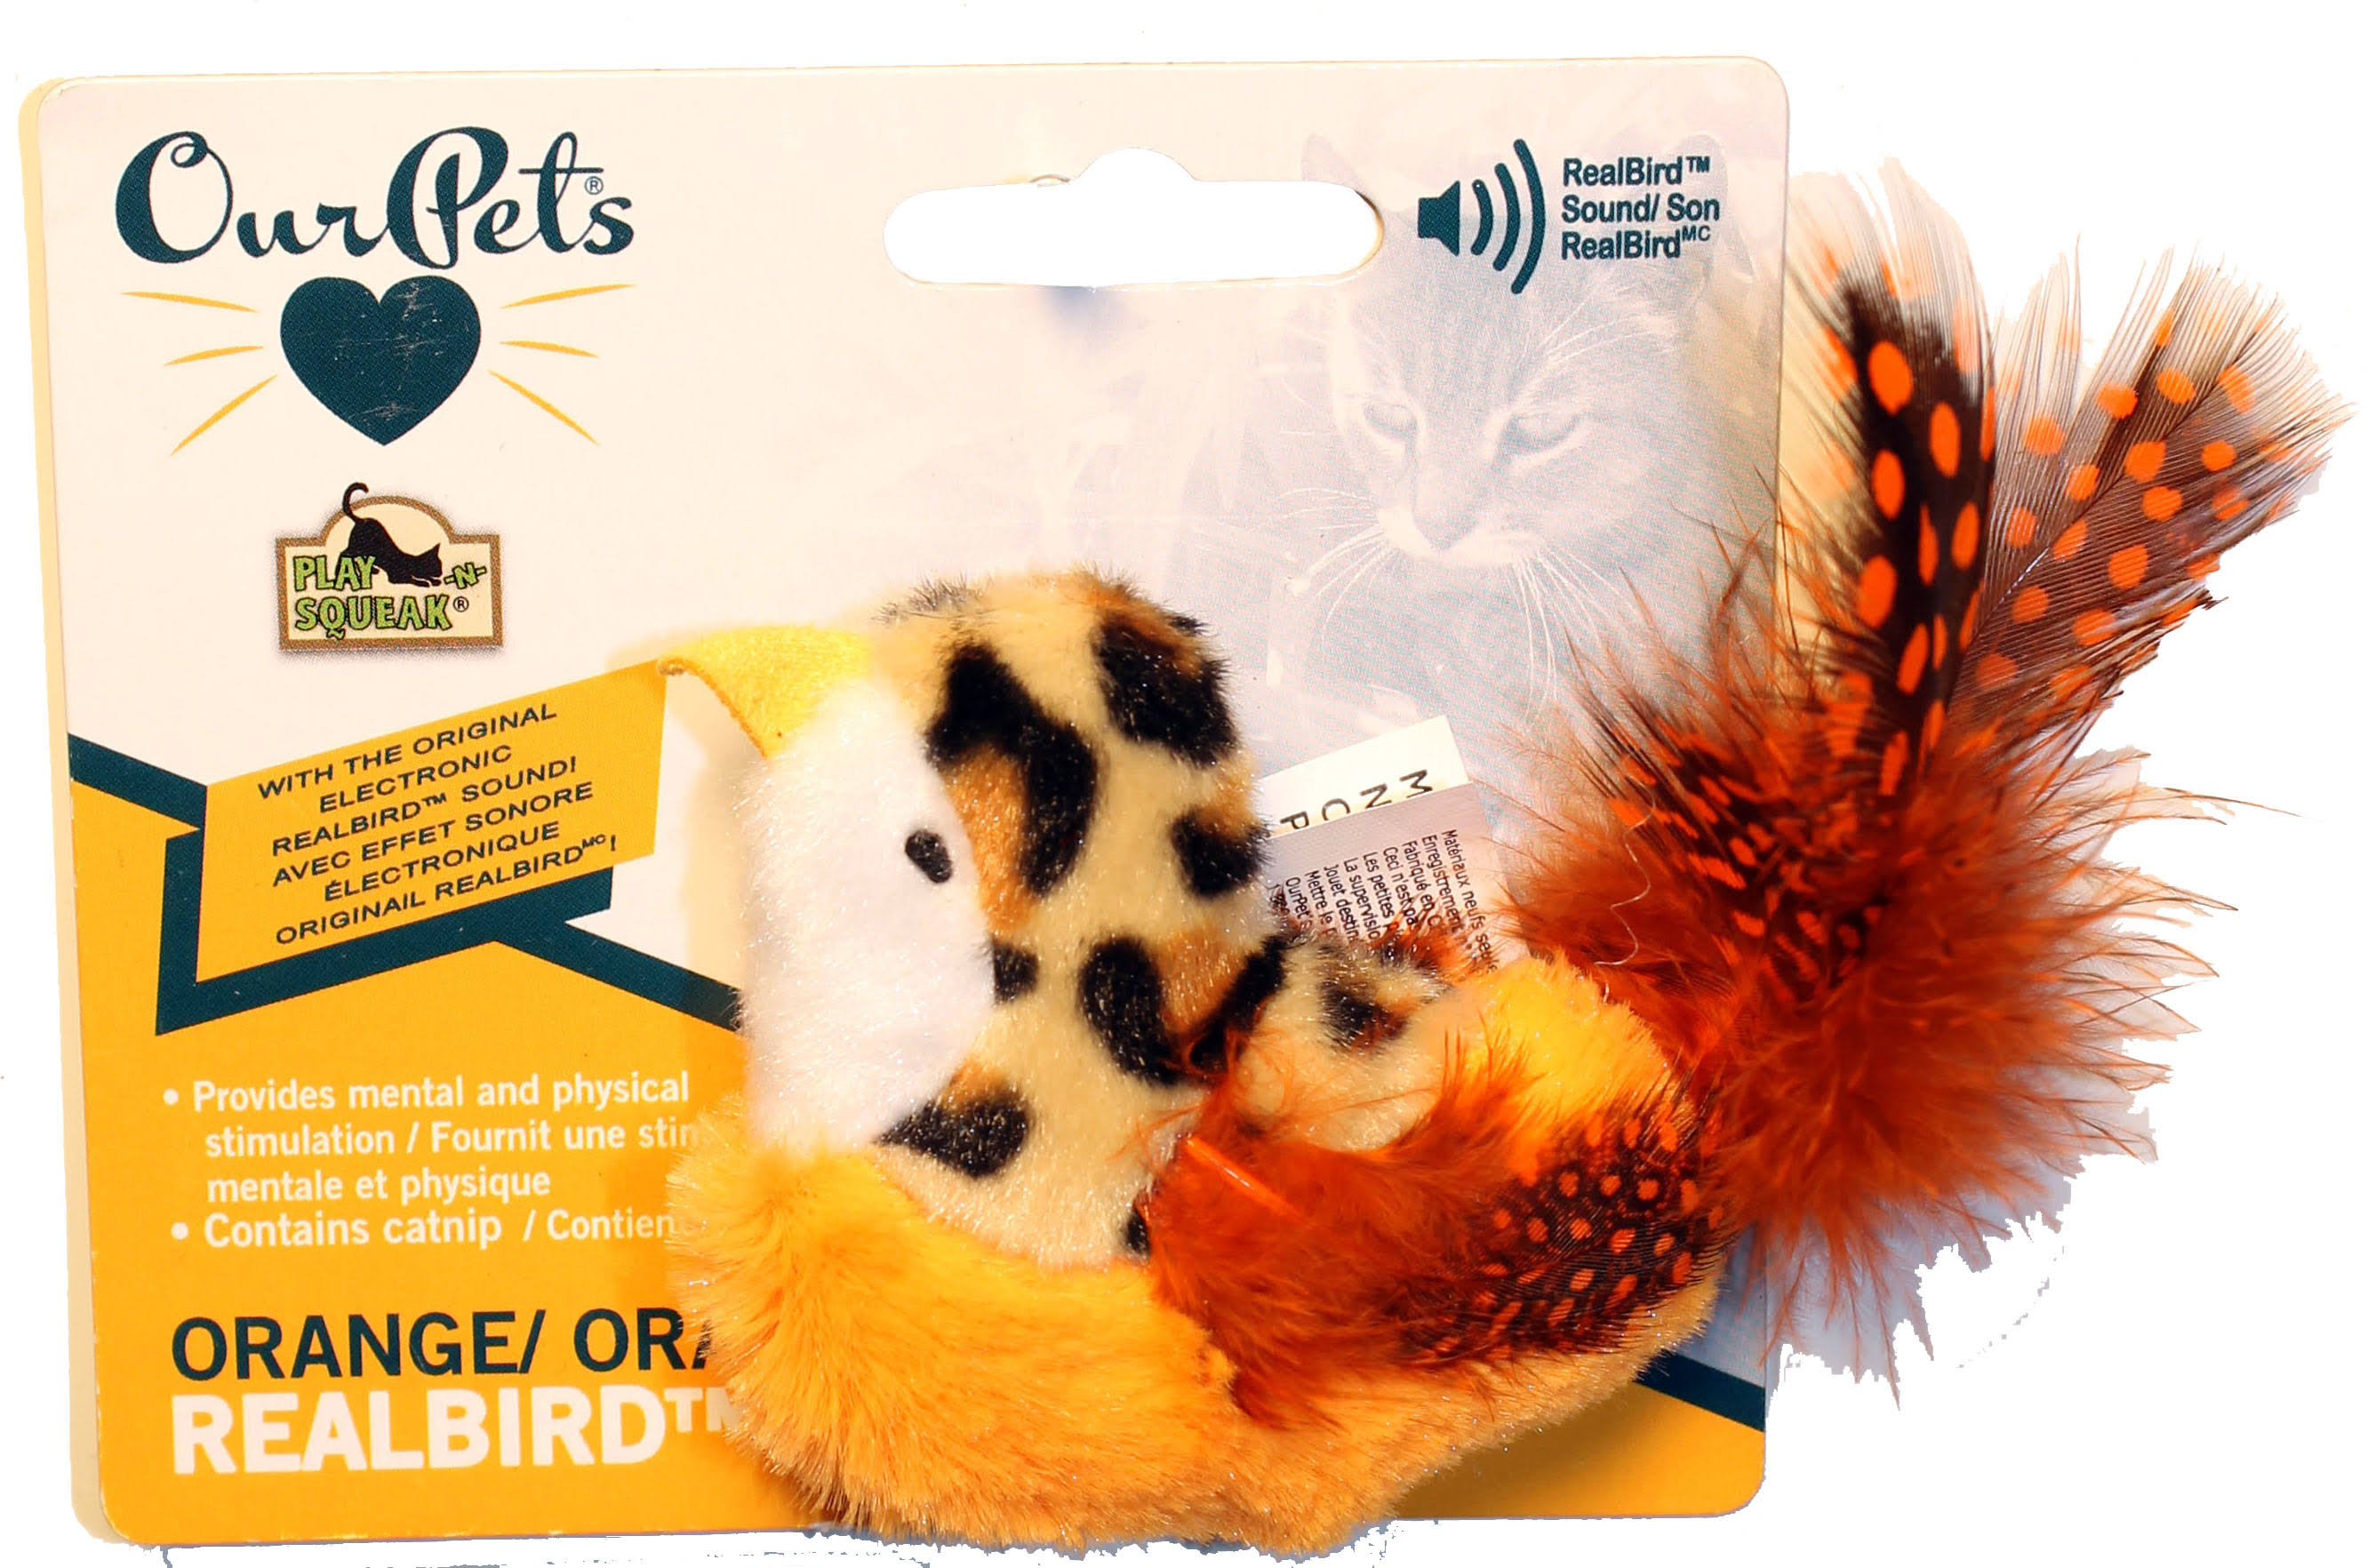 Ourpets Catnip Real Birds CHIRP Squeaky Cat Toy Orange w/ Feather. USA